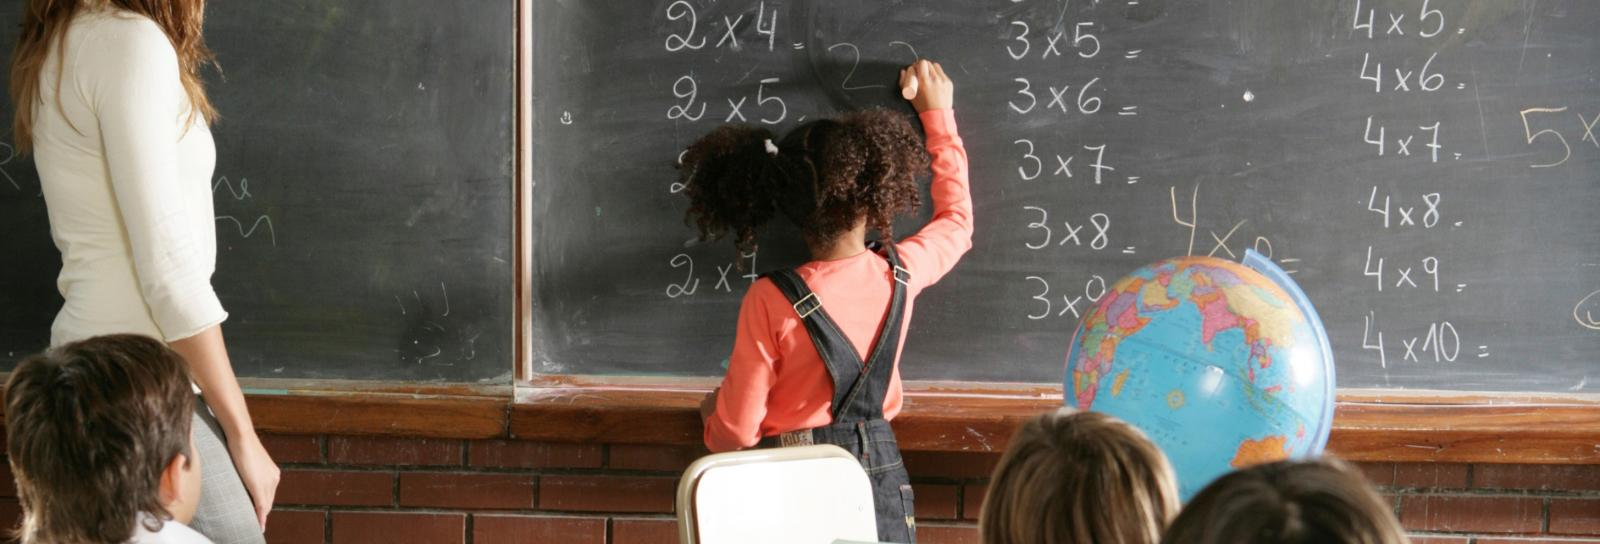 a young girl solves simple math problems on the black board while teacher and classmates watch